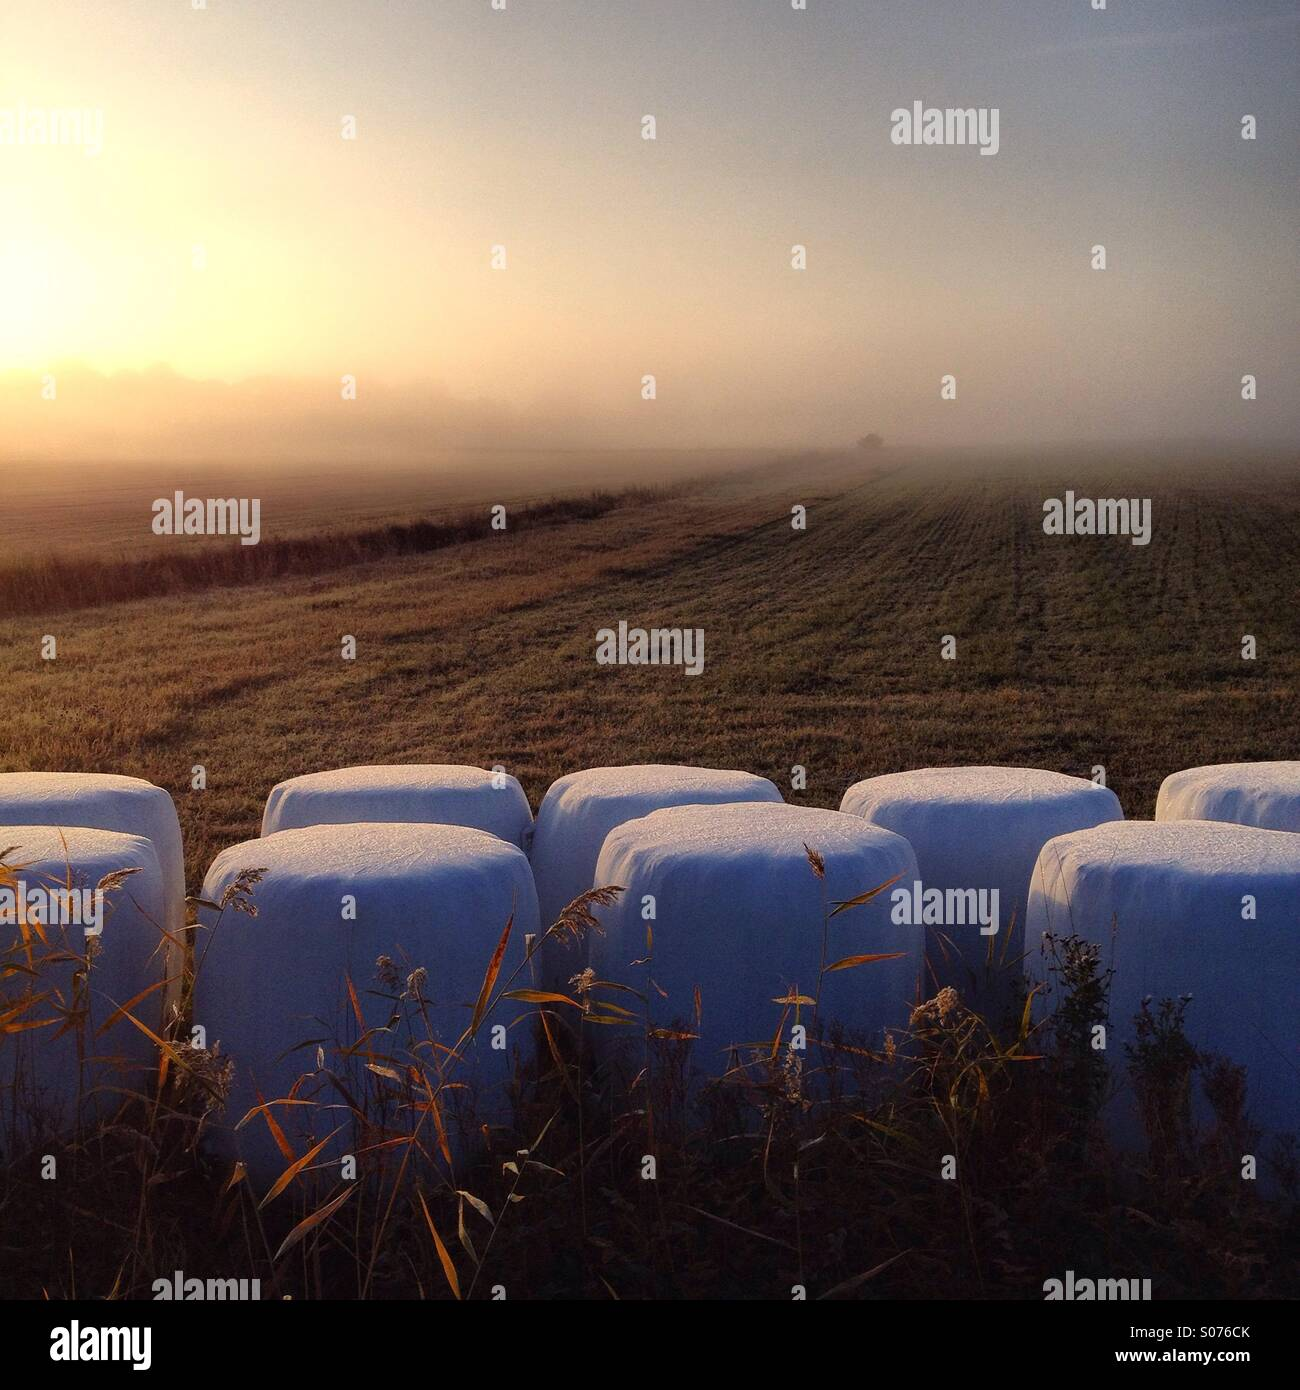 Wrapped hay bales in morning autumn mist in the Finnish Baltic Archipelago island of Åland - Stock Image